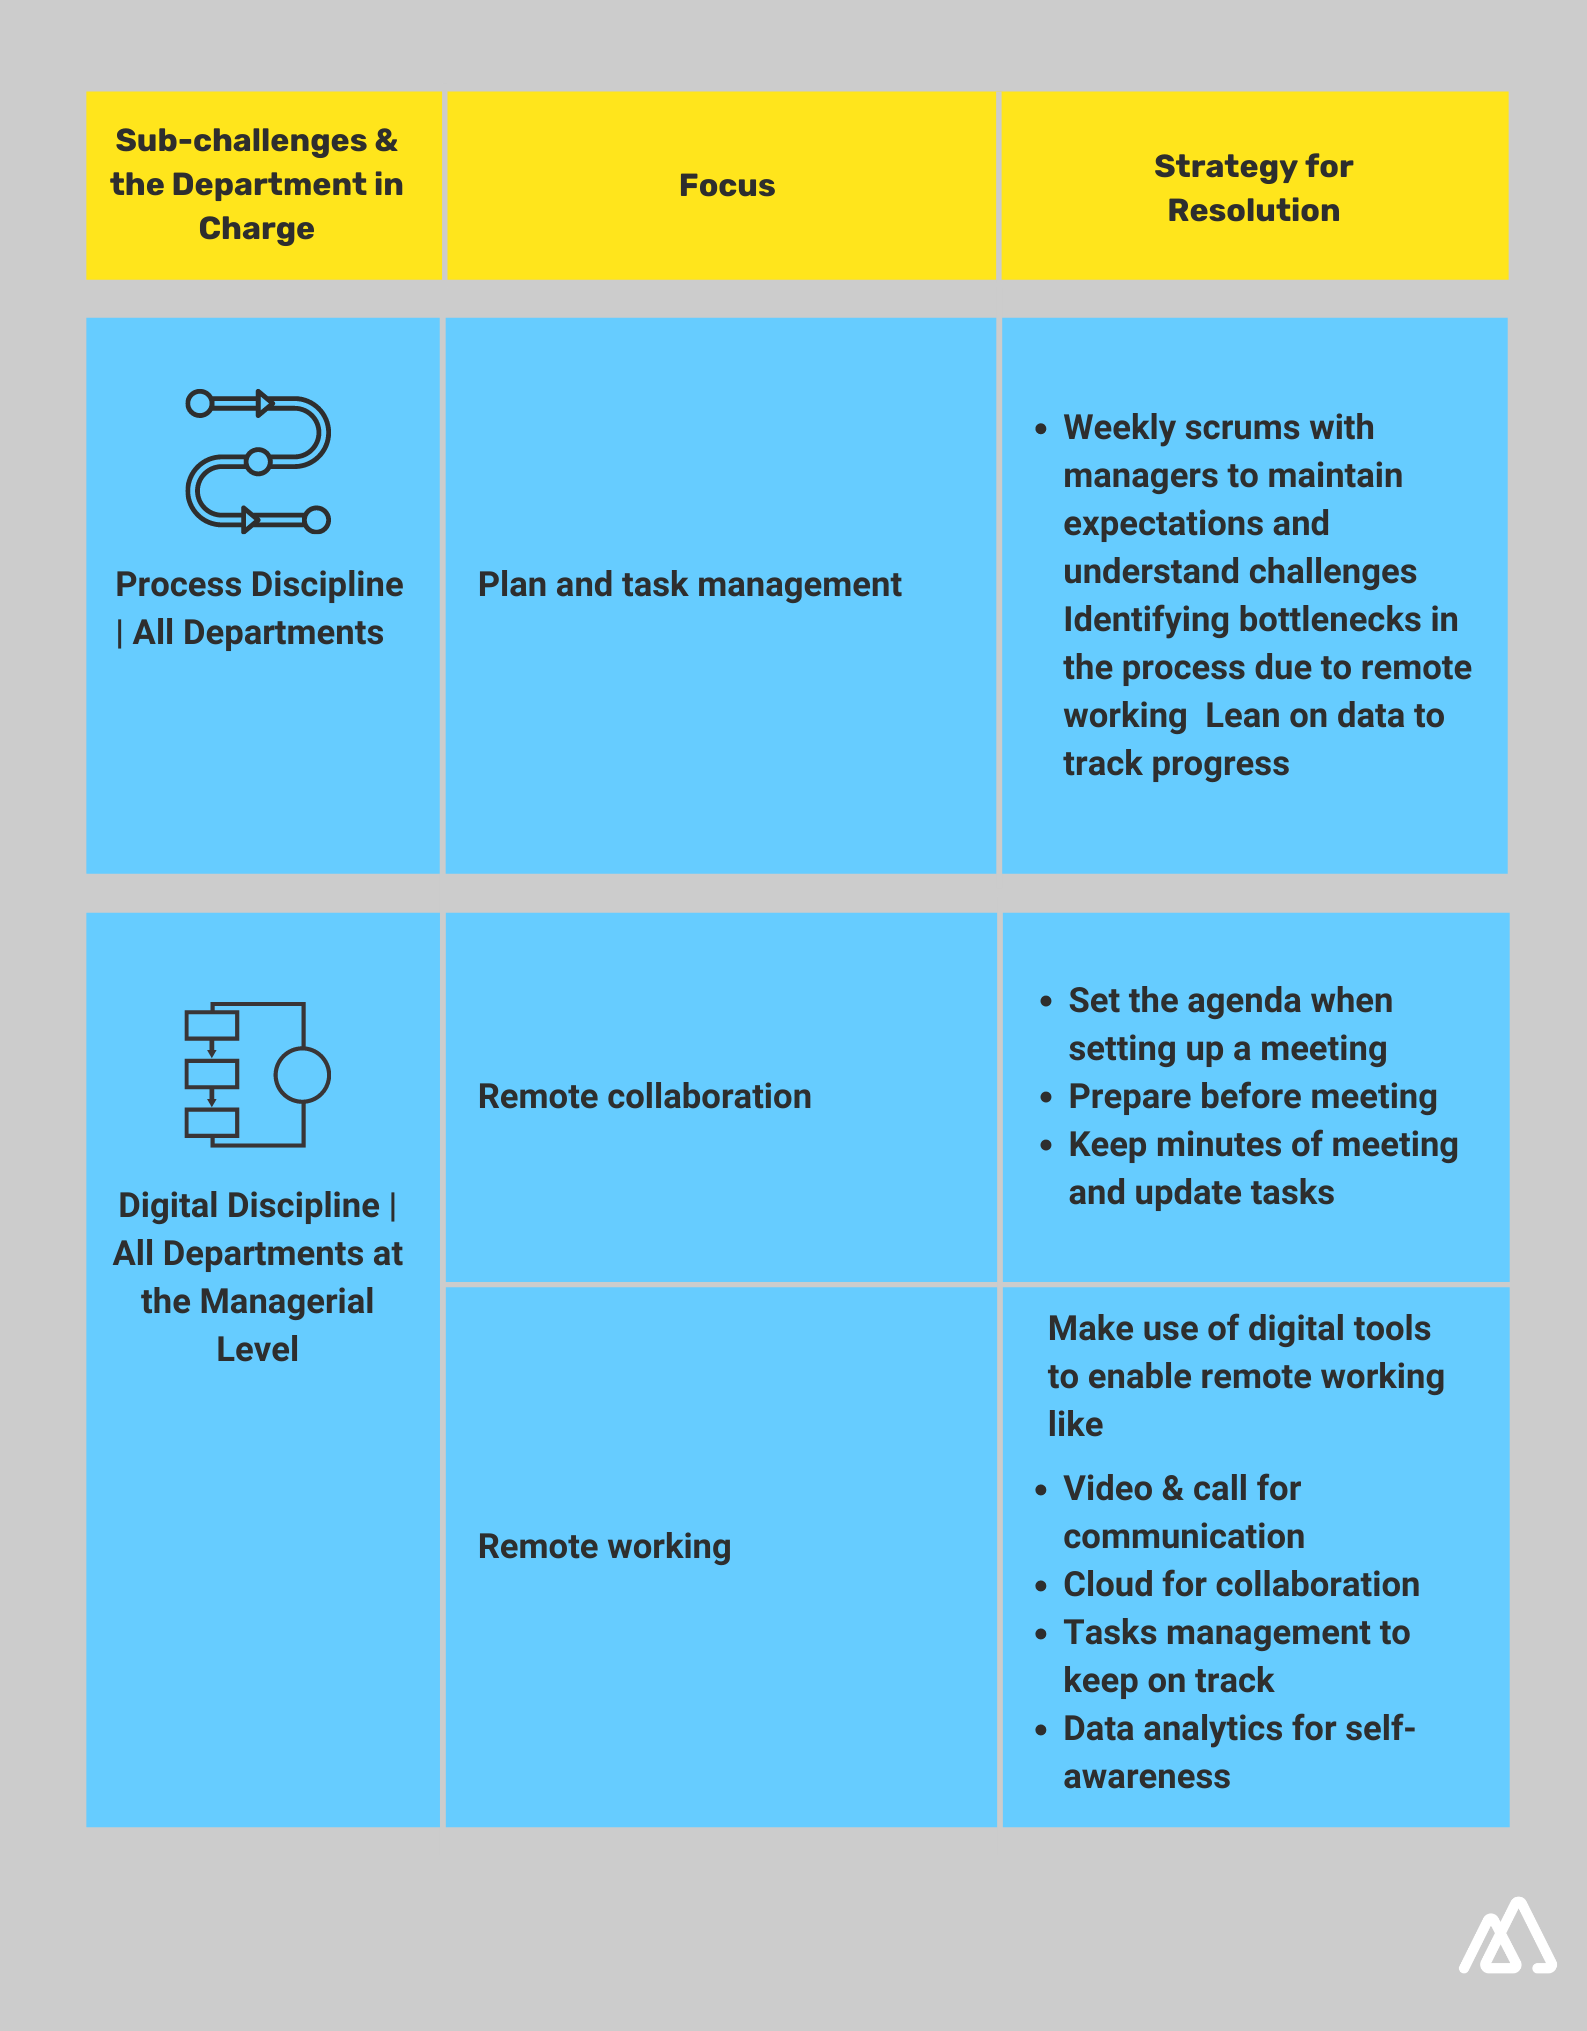 Infographic explaining sub challenges and department in charge for Employee Productivity